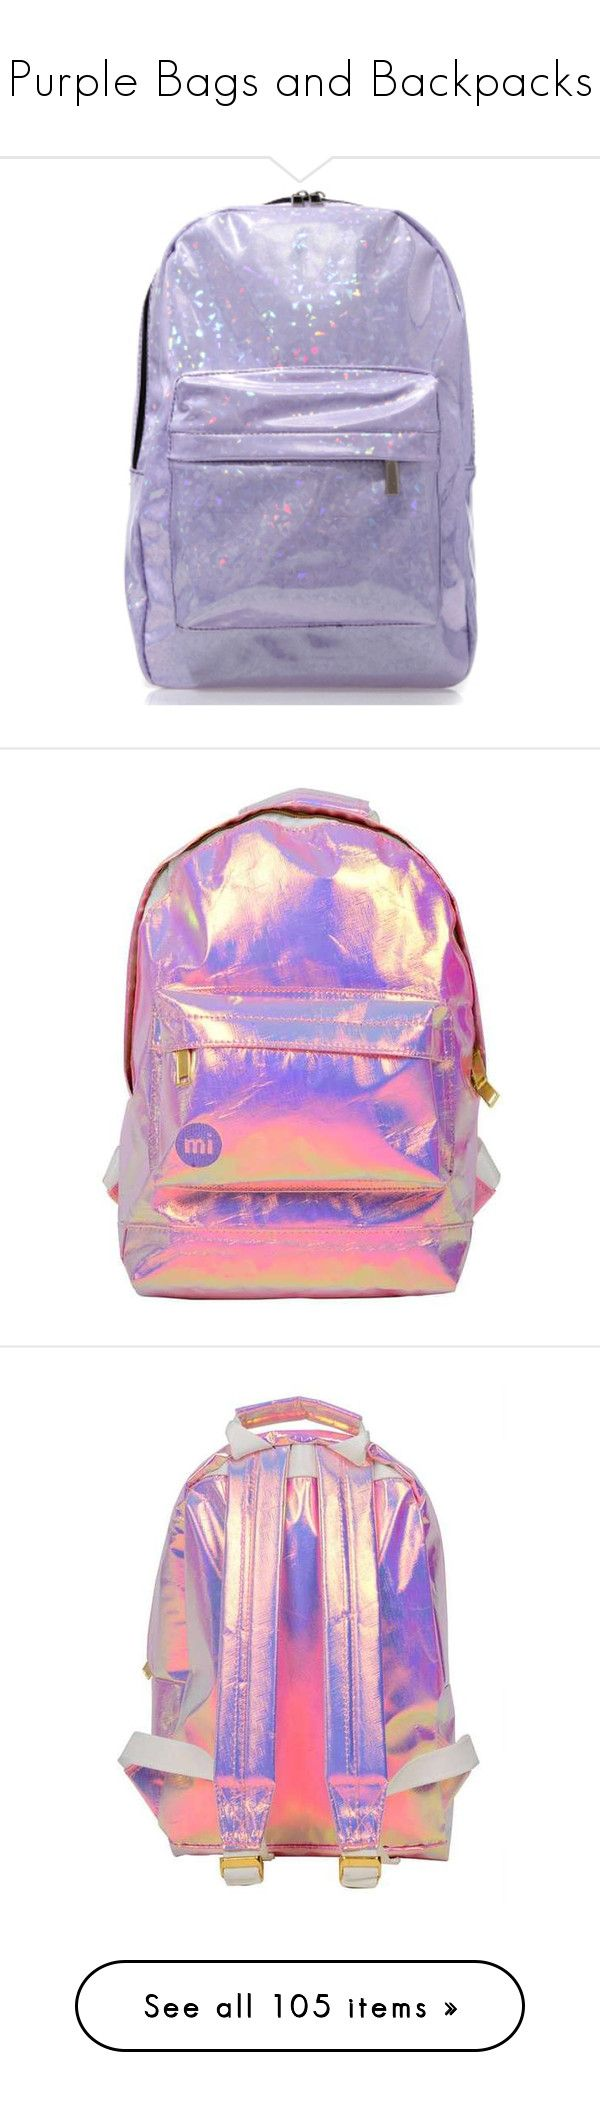 """""""Purple Bags and Backpacks"""" by karla-jhoana ❤ liked on Polyvore featuring bags, handbags, lilac, purple purse, lilac purse, hand bags, love moschino purse, logo bags, clutches and purple"""